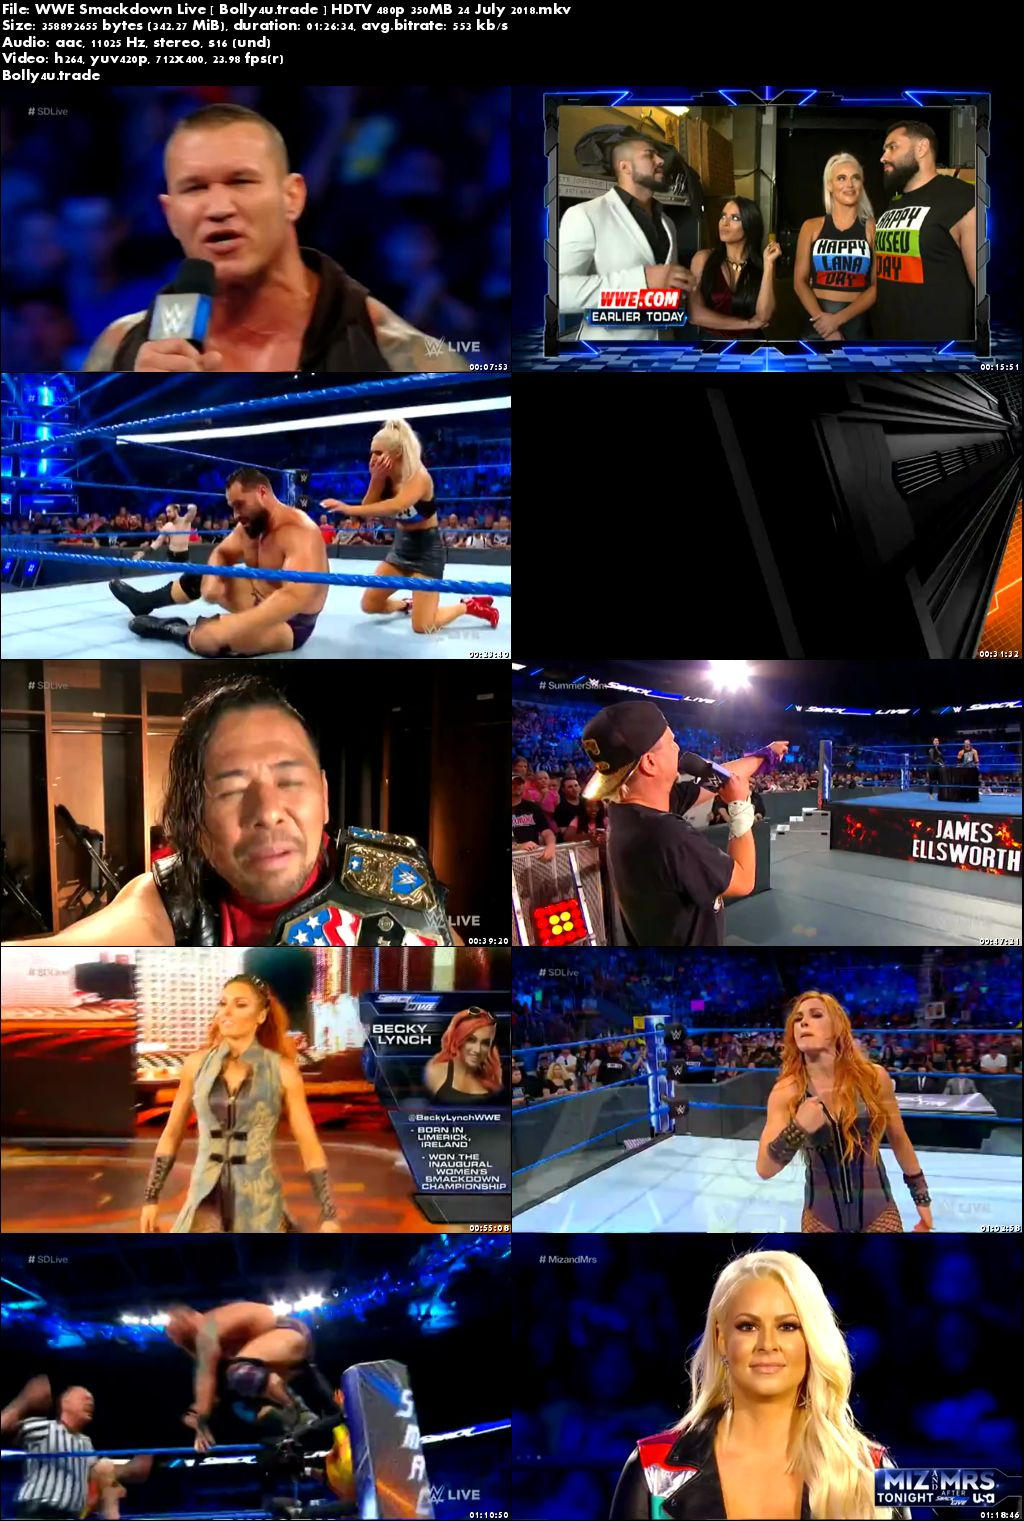 WWE Smackdown Live HDTV 480p 350MB 24 July 2018 Download